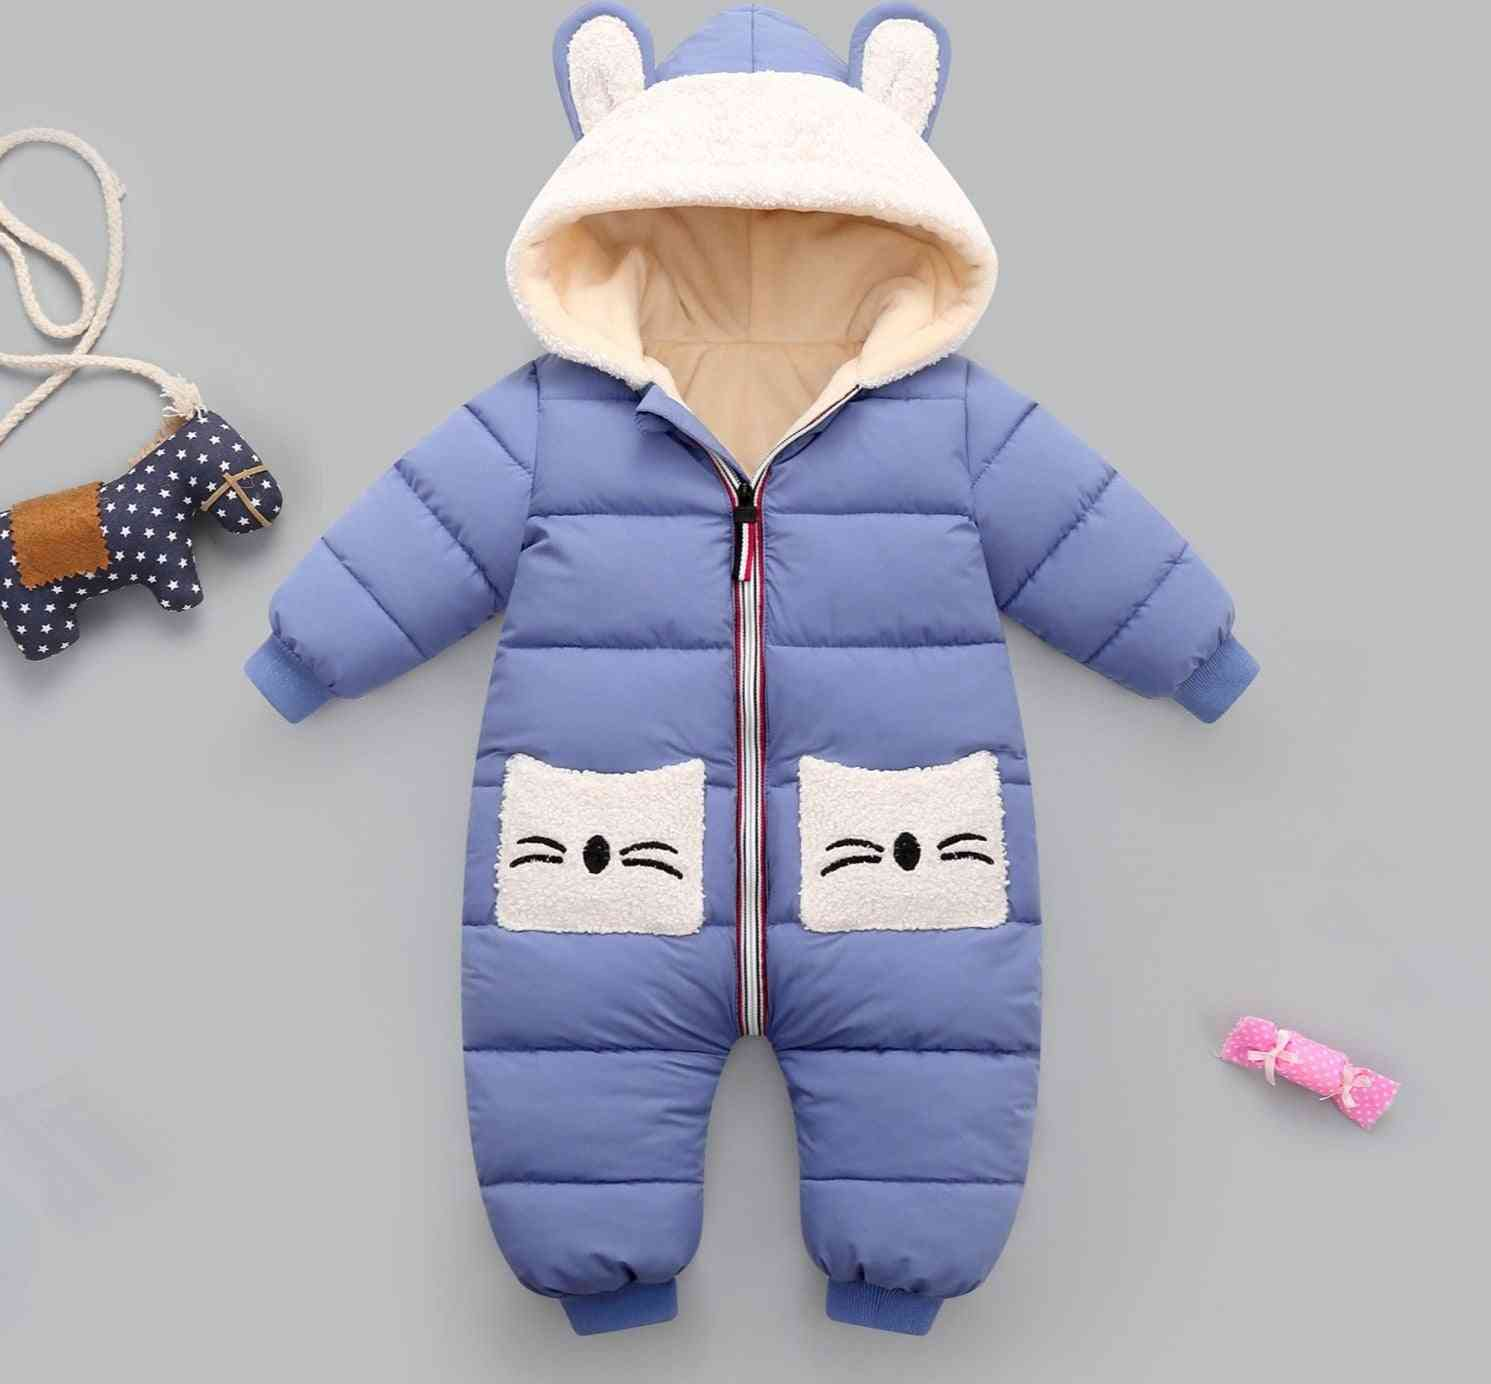 Baby Girl Coat Winter Hooded Mantle Rompers, Thick Warm Jumpsuit Overalls Snowsuit